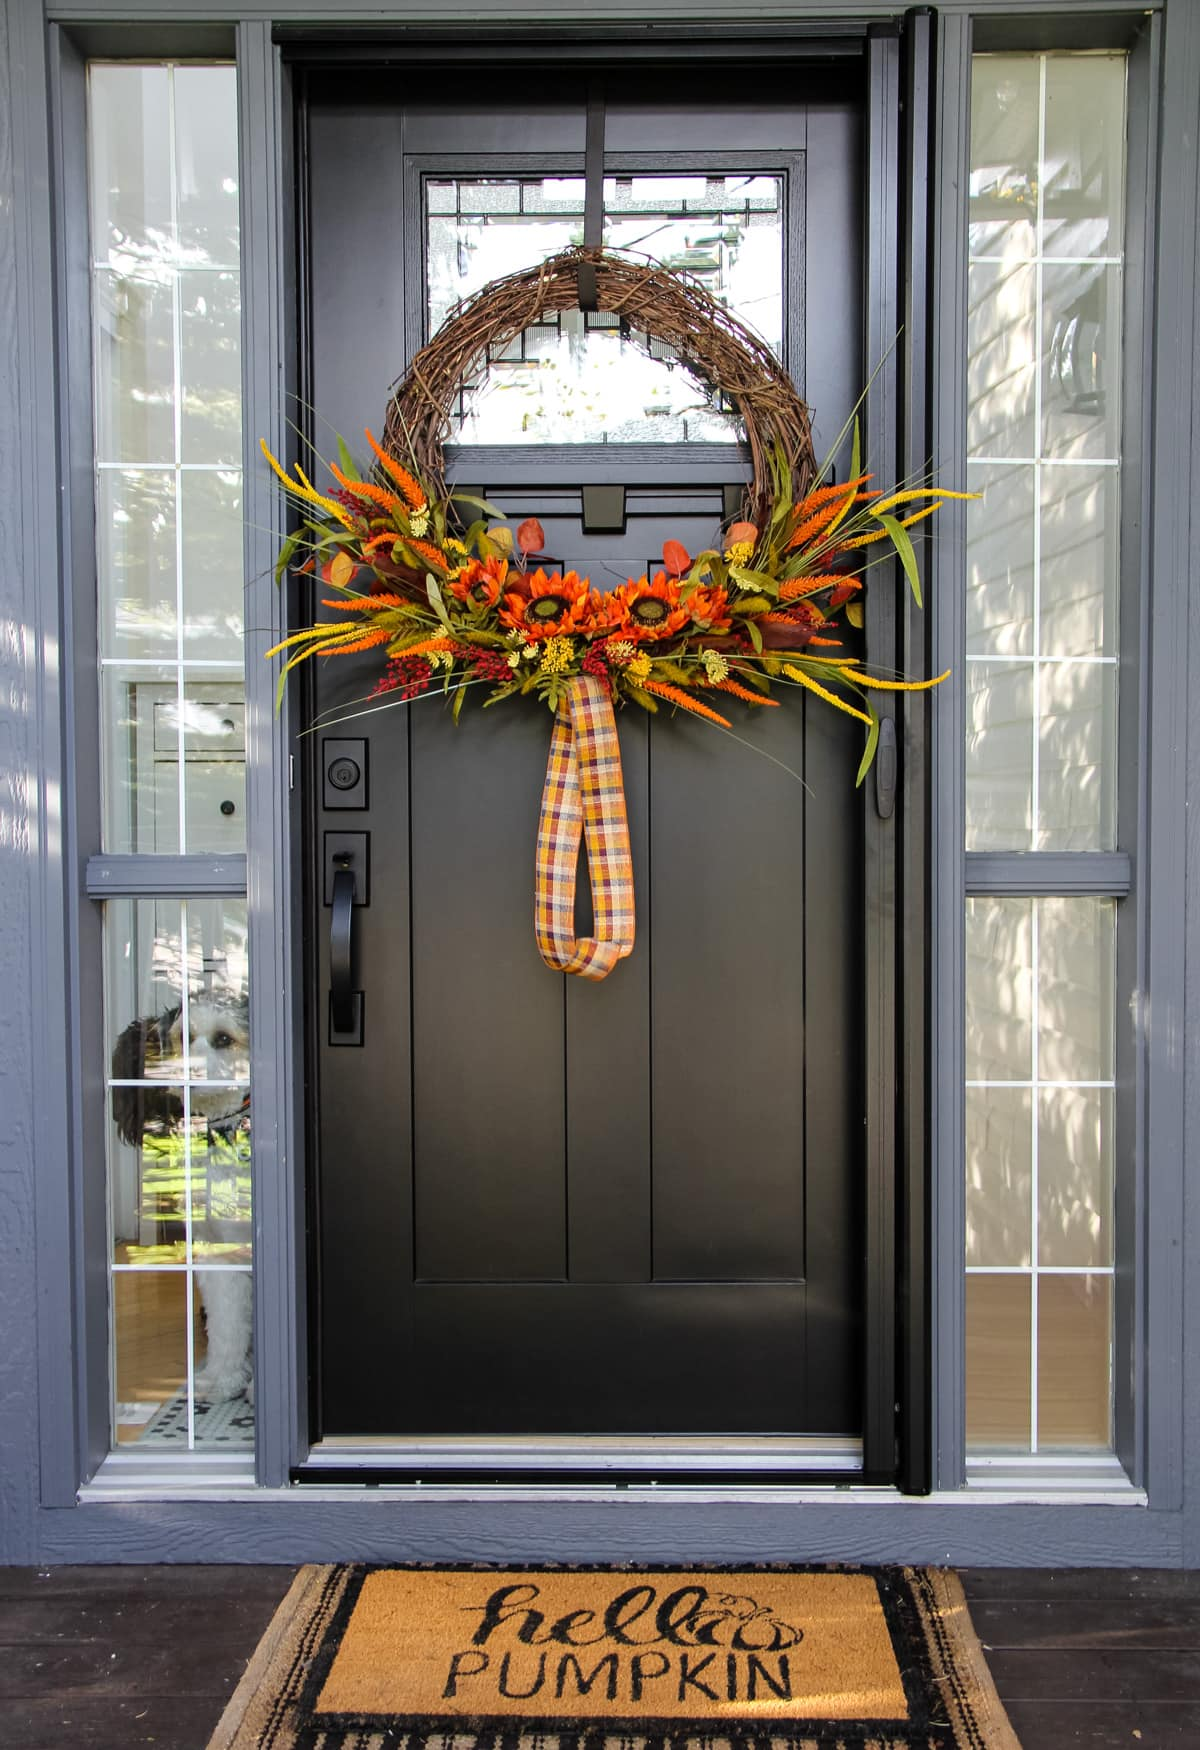 a large grapevine wreath decorated with dried fall florals stems and a plaid ribbon hangs on a black door